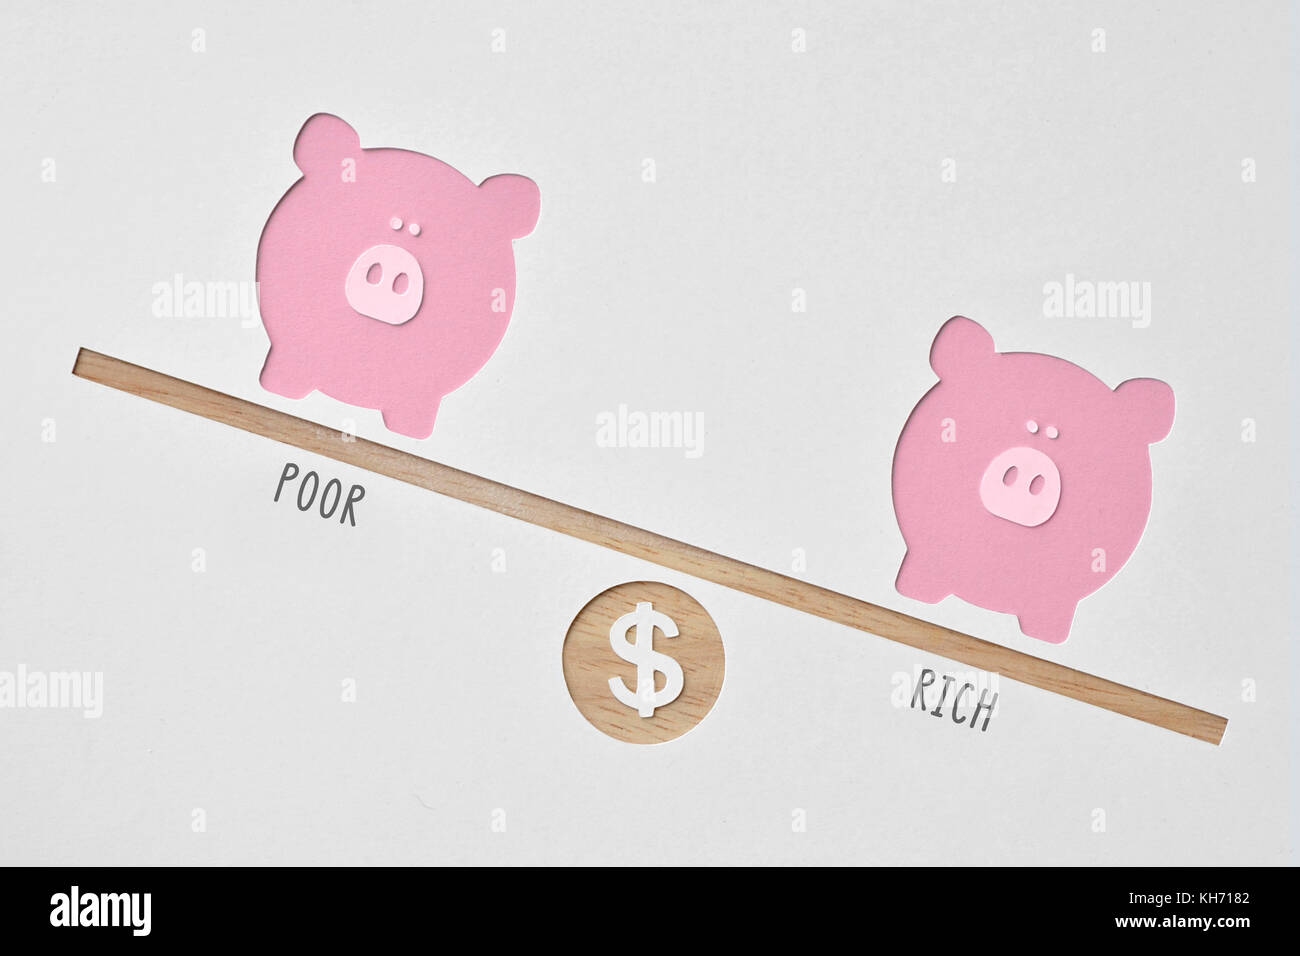 Poor and rich piggy banks - Inequality concept - Stock Image